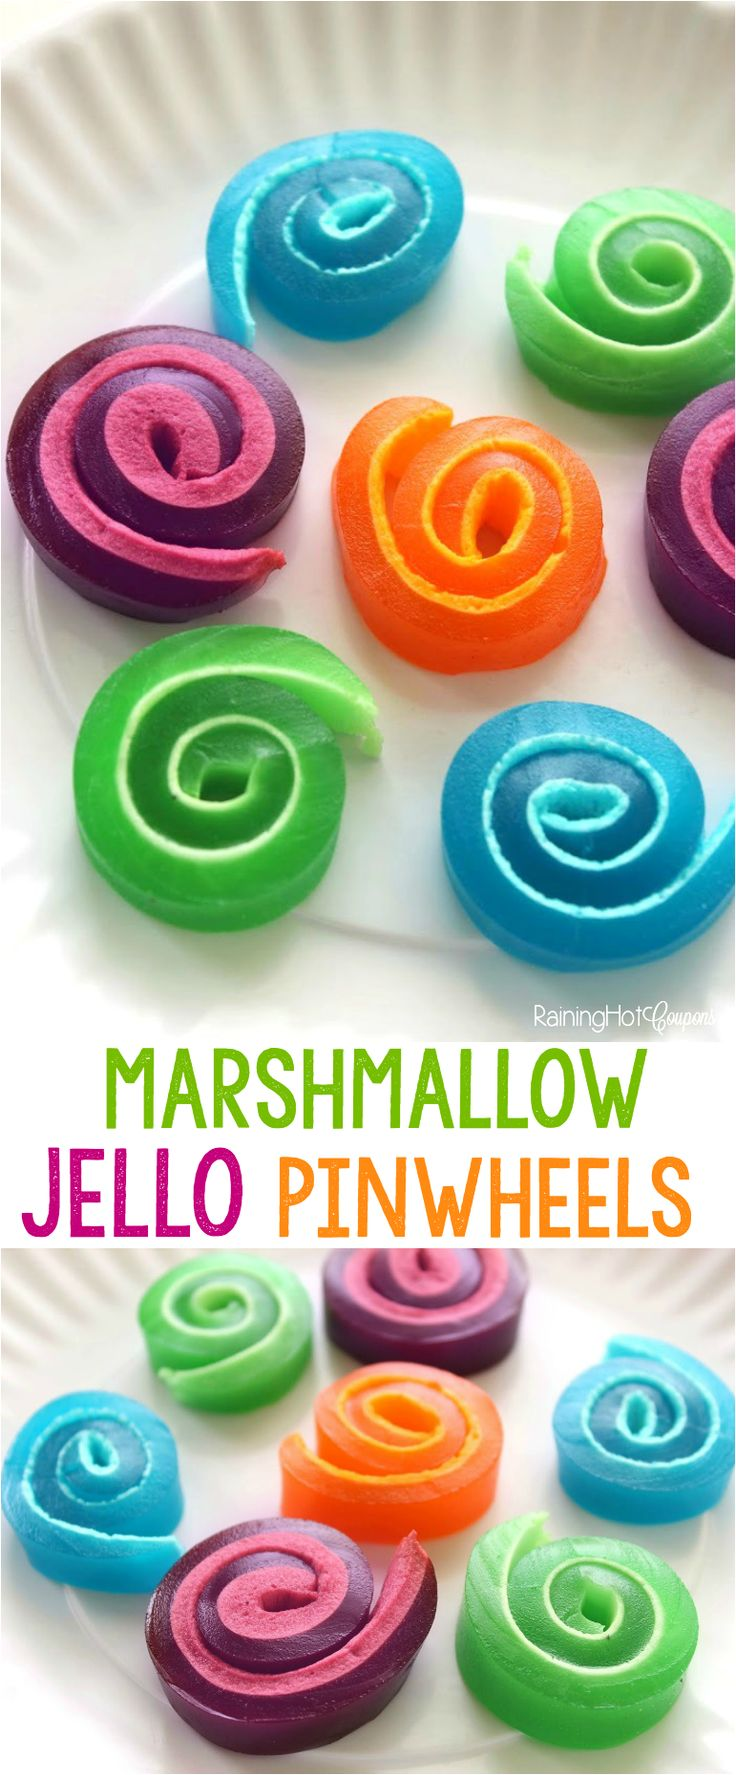 Marshmallow Jello Pinwheels - Raining Hot Coupons